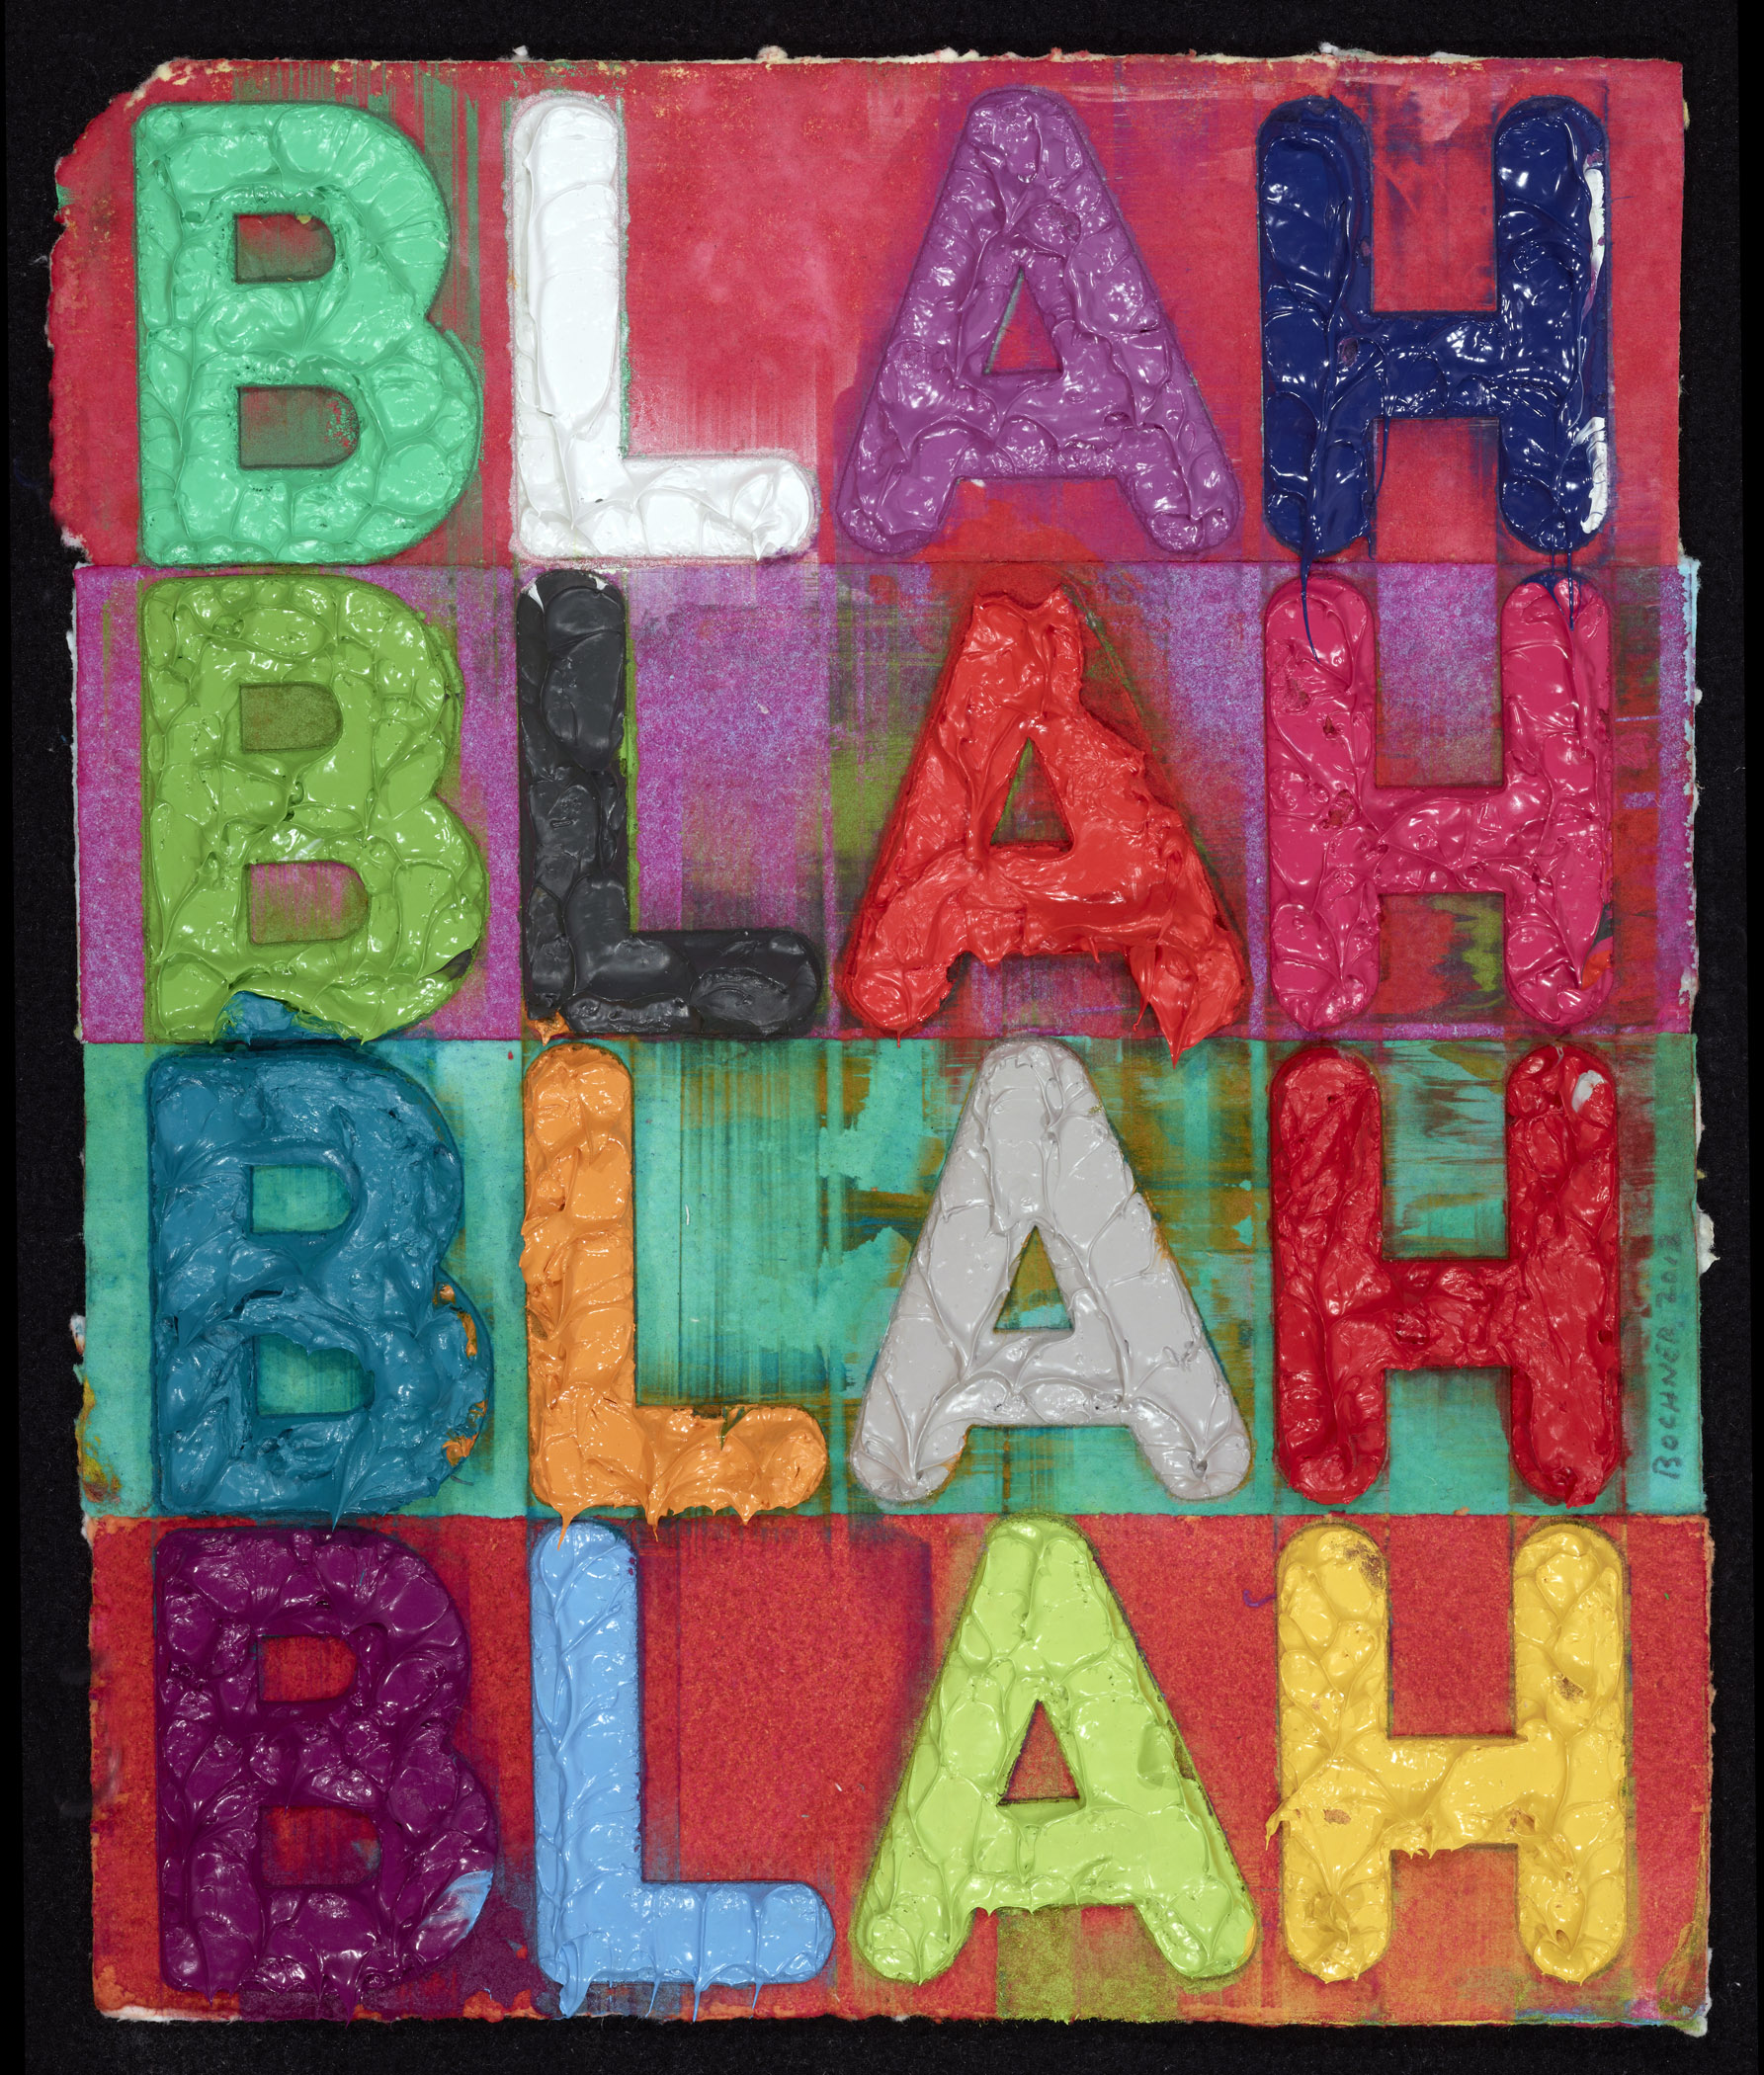 Mel Bochner, Blah, Blah, Blah, 2013, Monoprint with collage, engraving, and embossment on hand-dyed Twinrocker handmade paper, 11 7/8 x 10 inches, 30.2 x 25.4 cm, Signed and dated on right recto in graphite